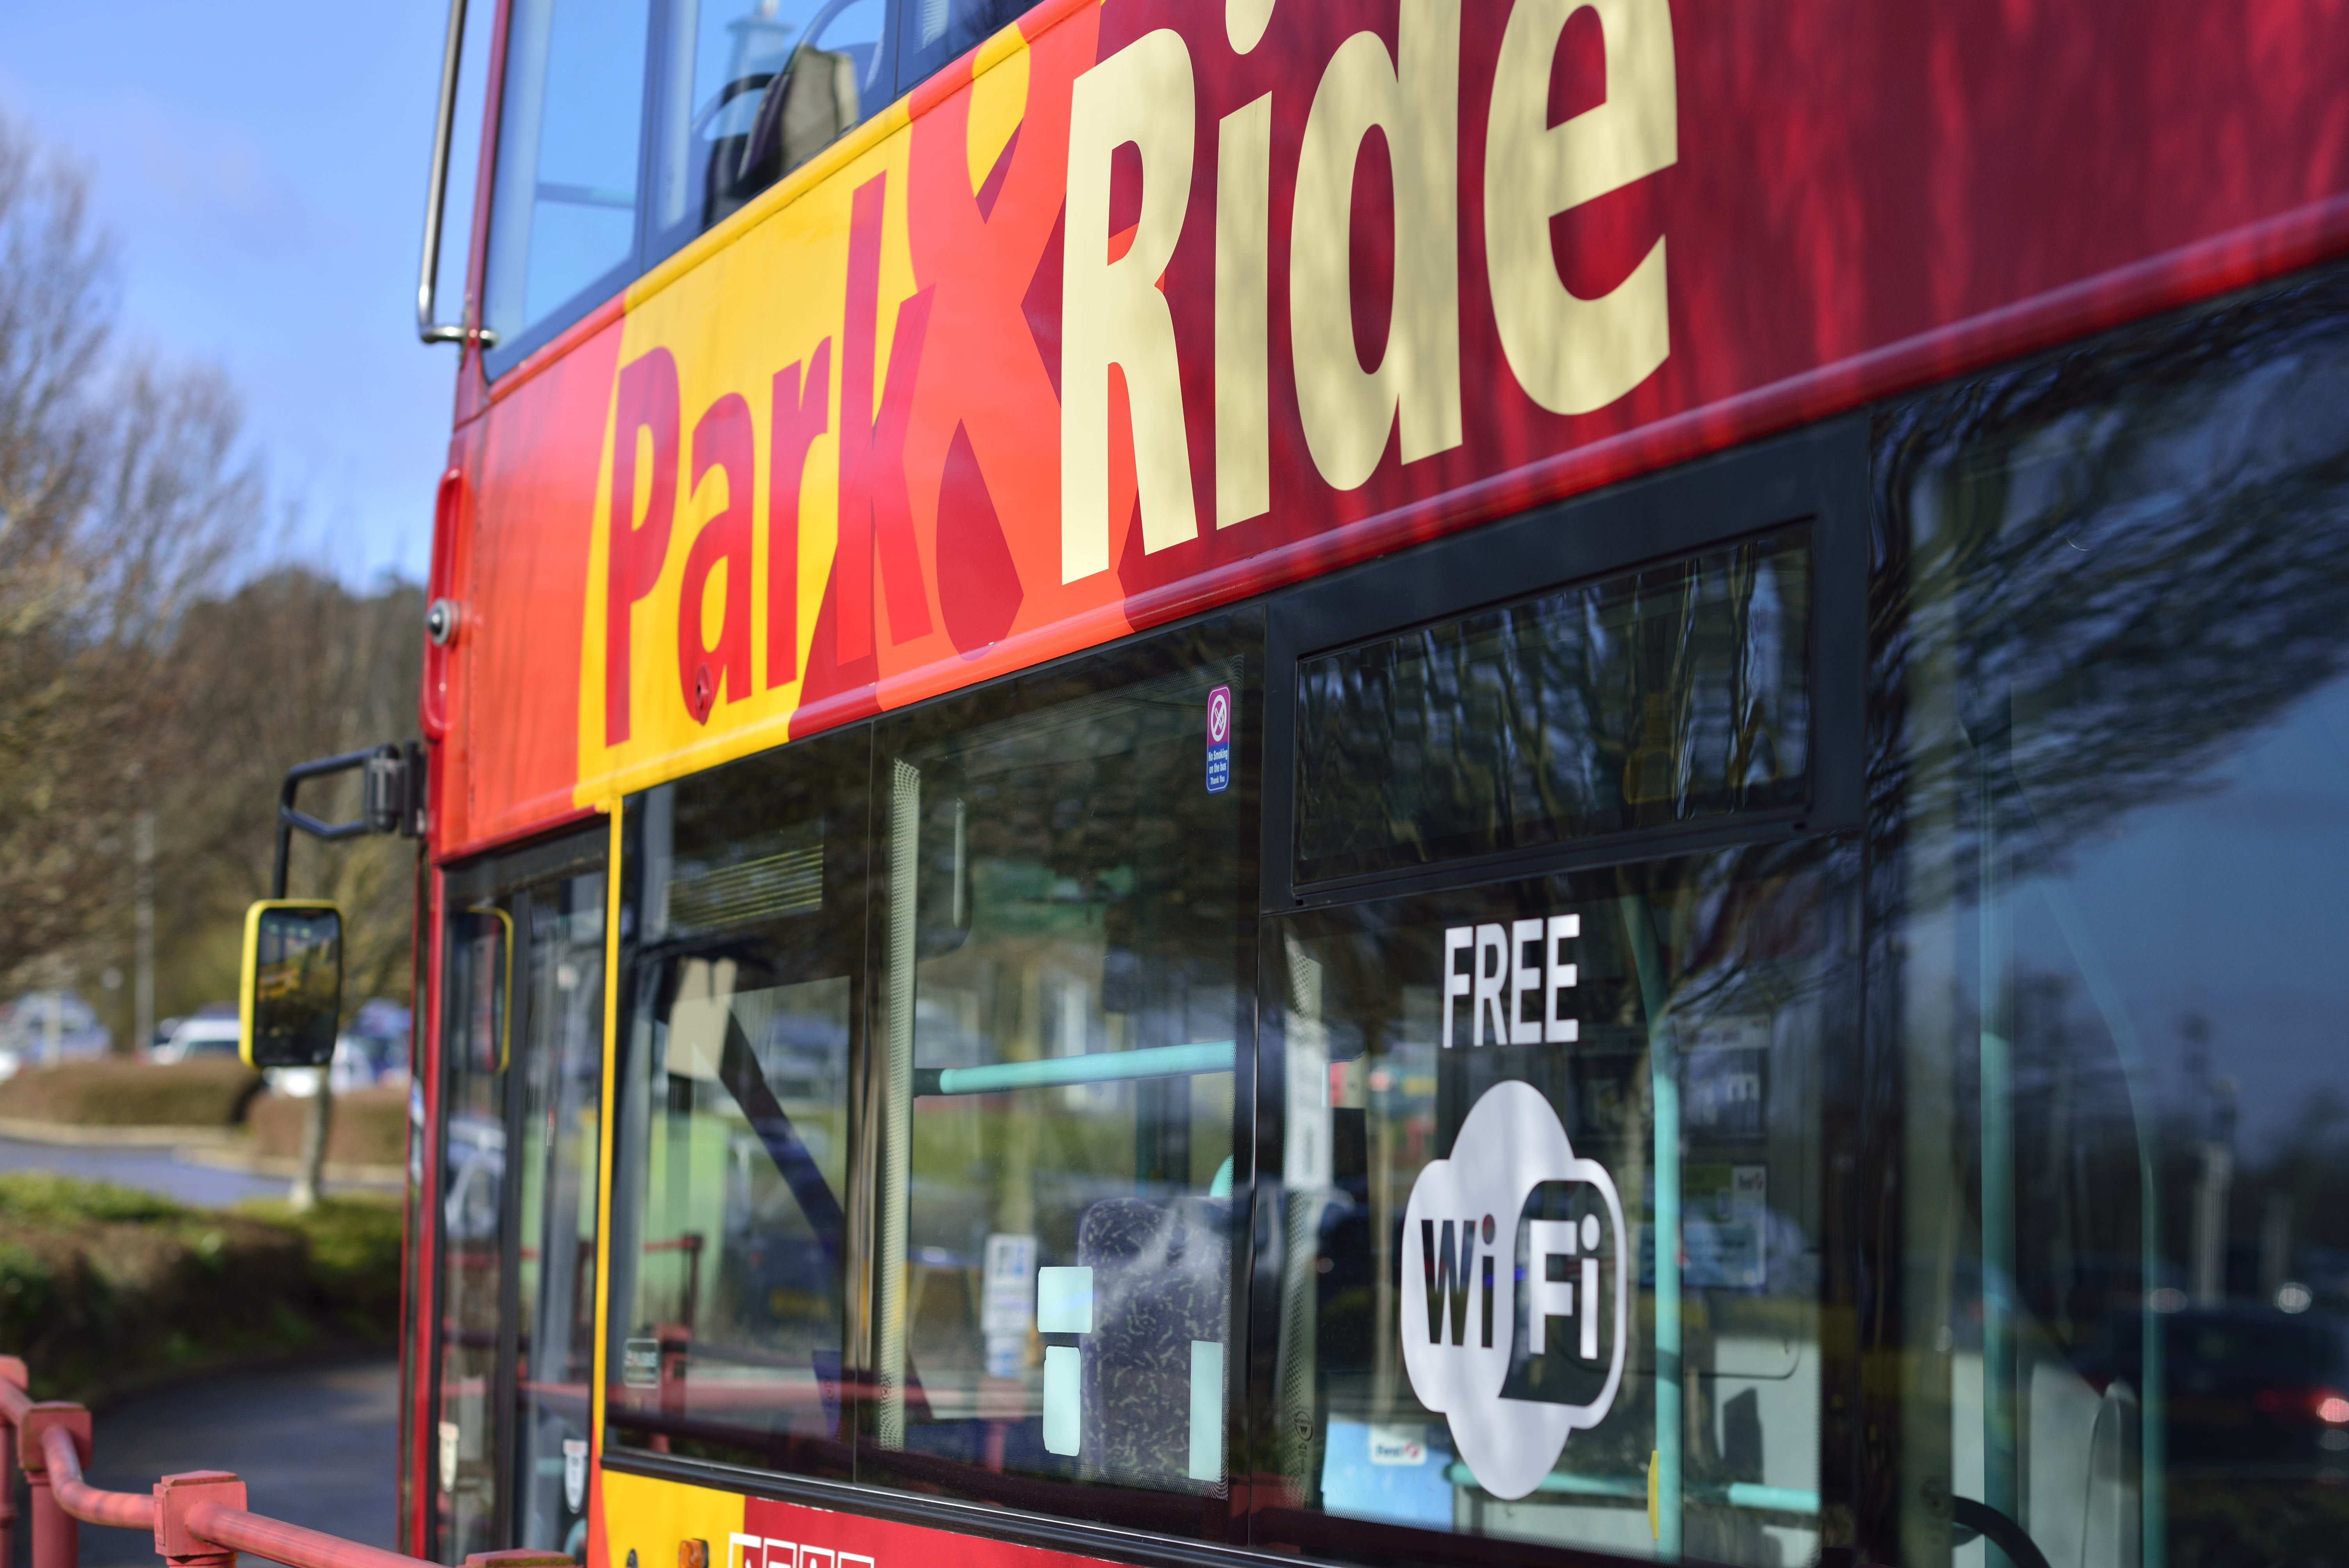 Bristol And Bath Park Ride Information